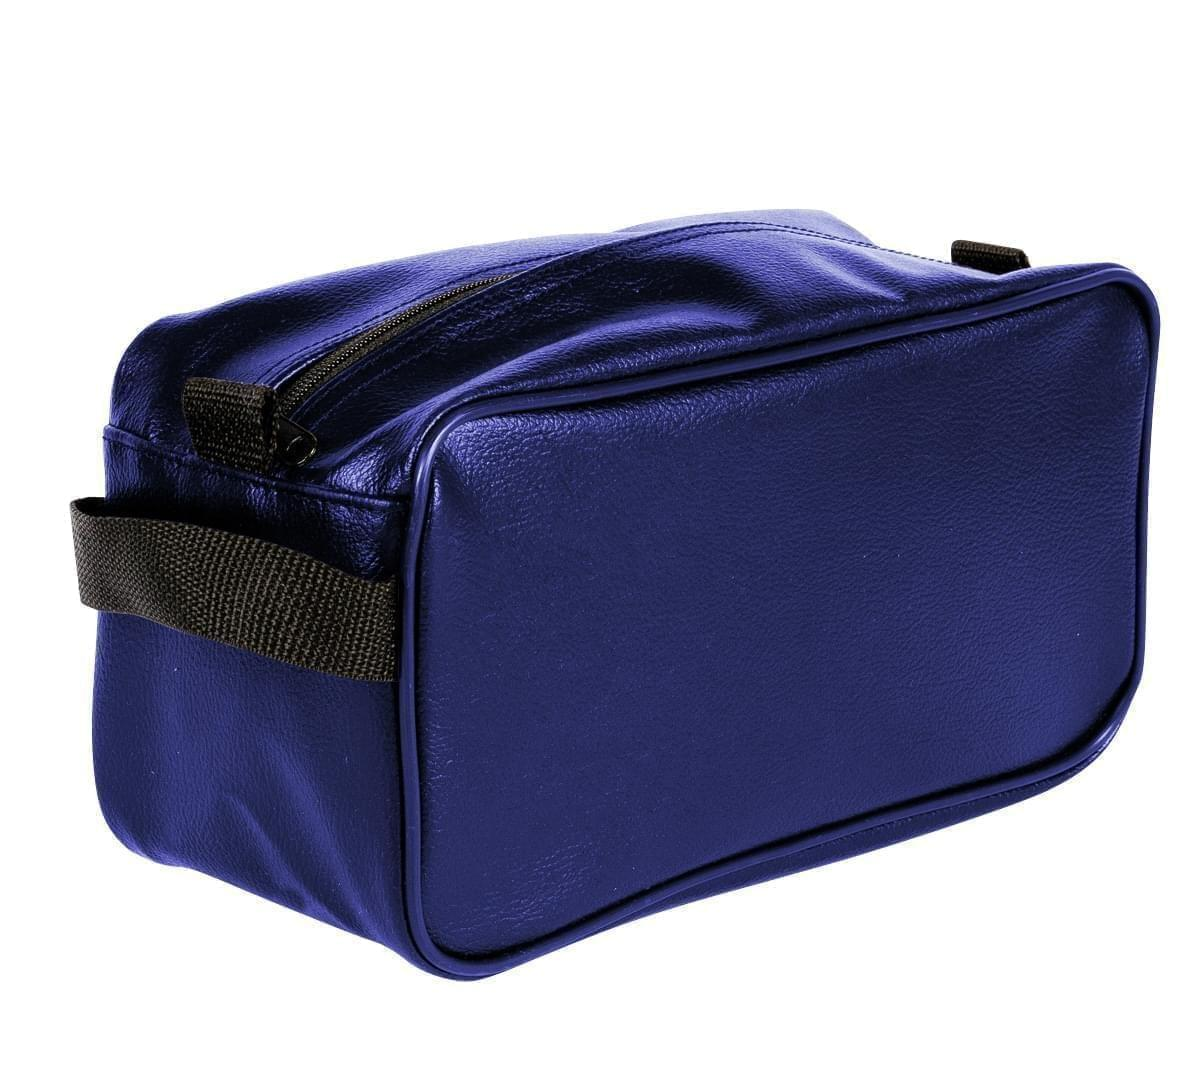 USA Made Cosmetic & Toiletry Cases, Purple-Black, 3000996-AYR